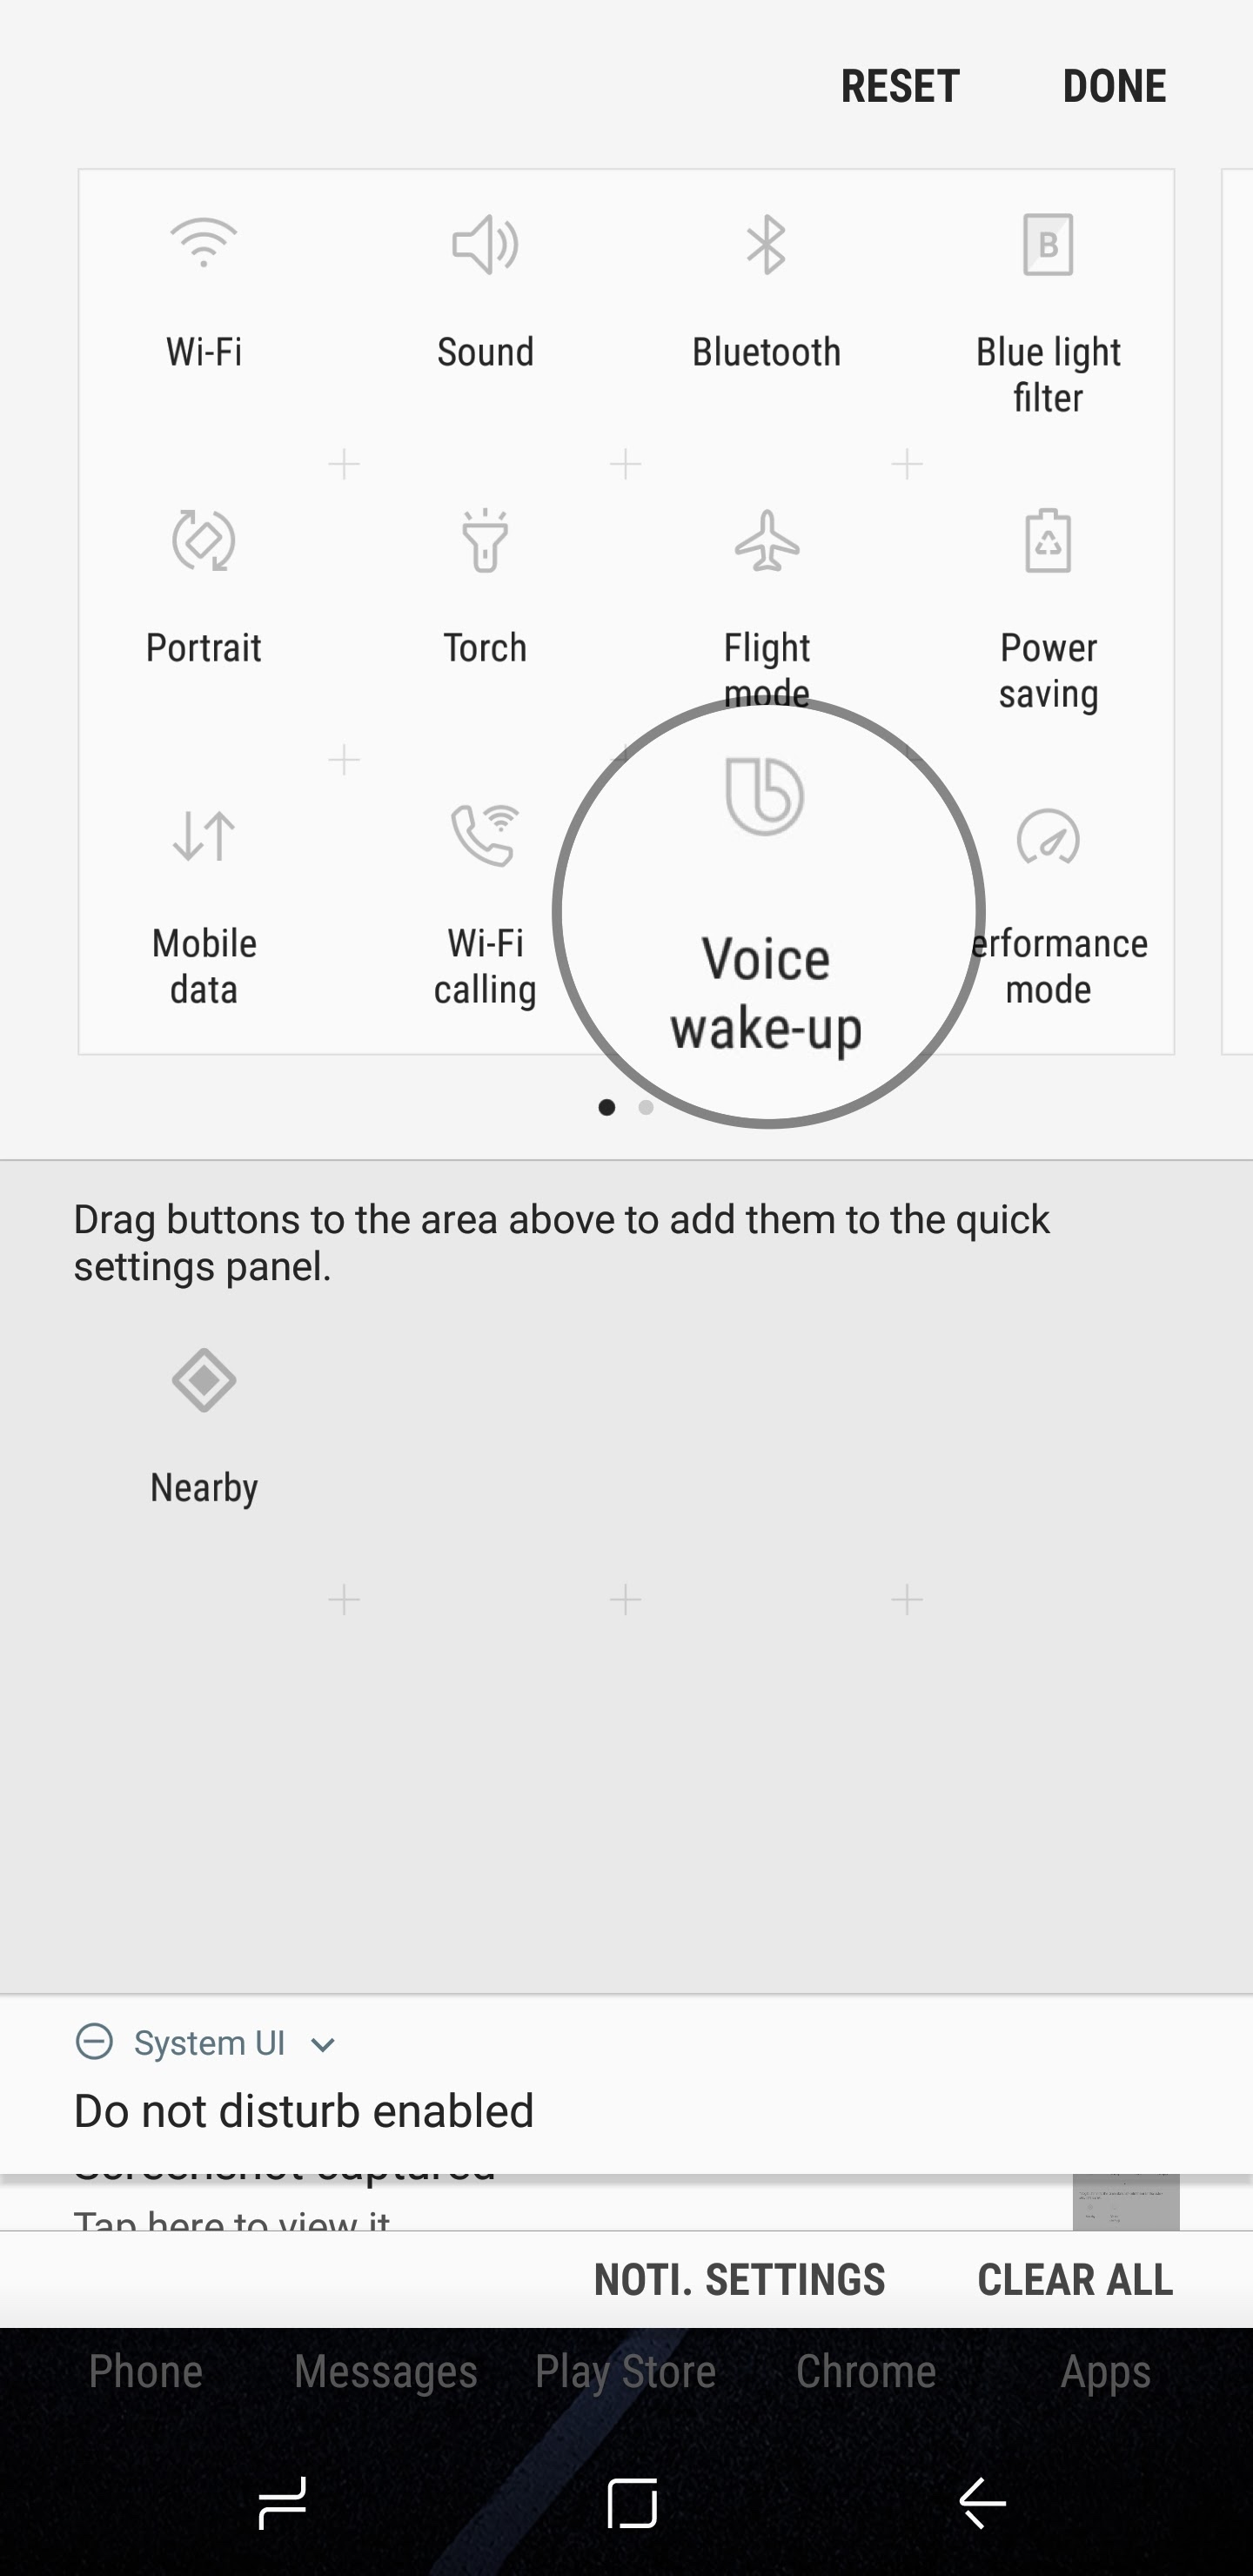 Bixby Tip: Enable or disable Bixby's voice wake-up feature with its quick toggle